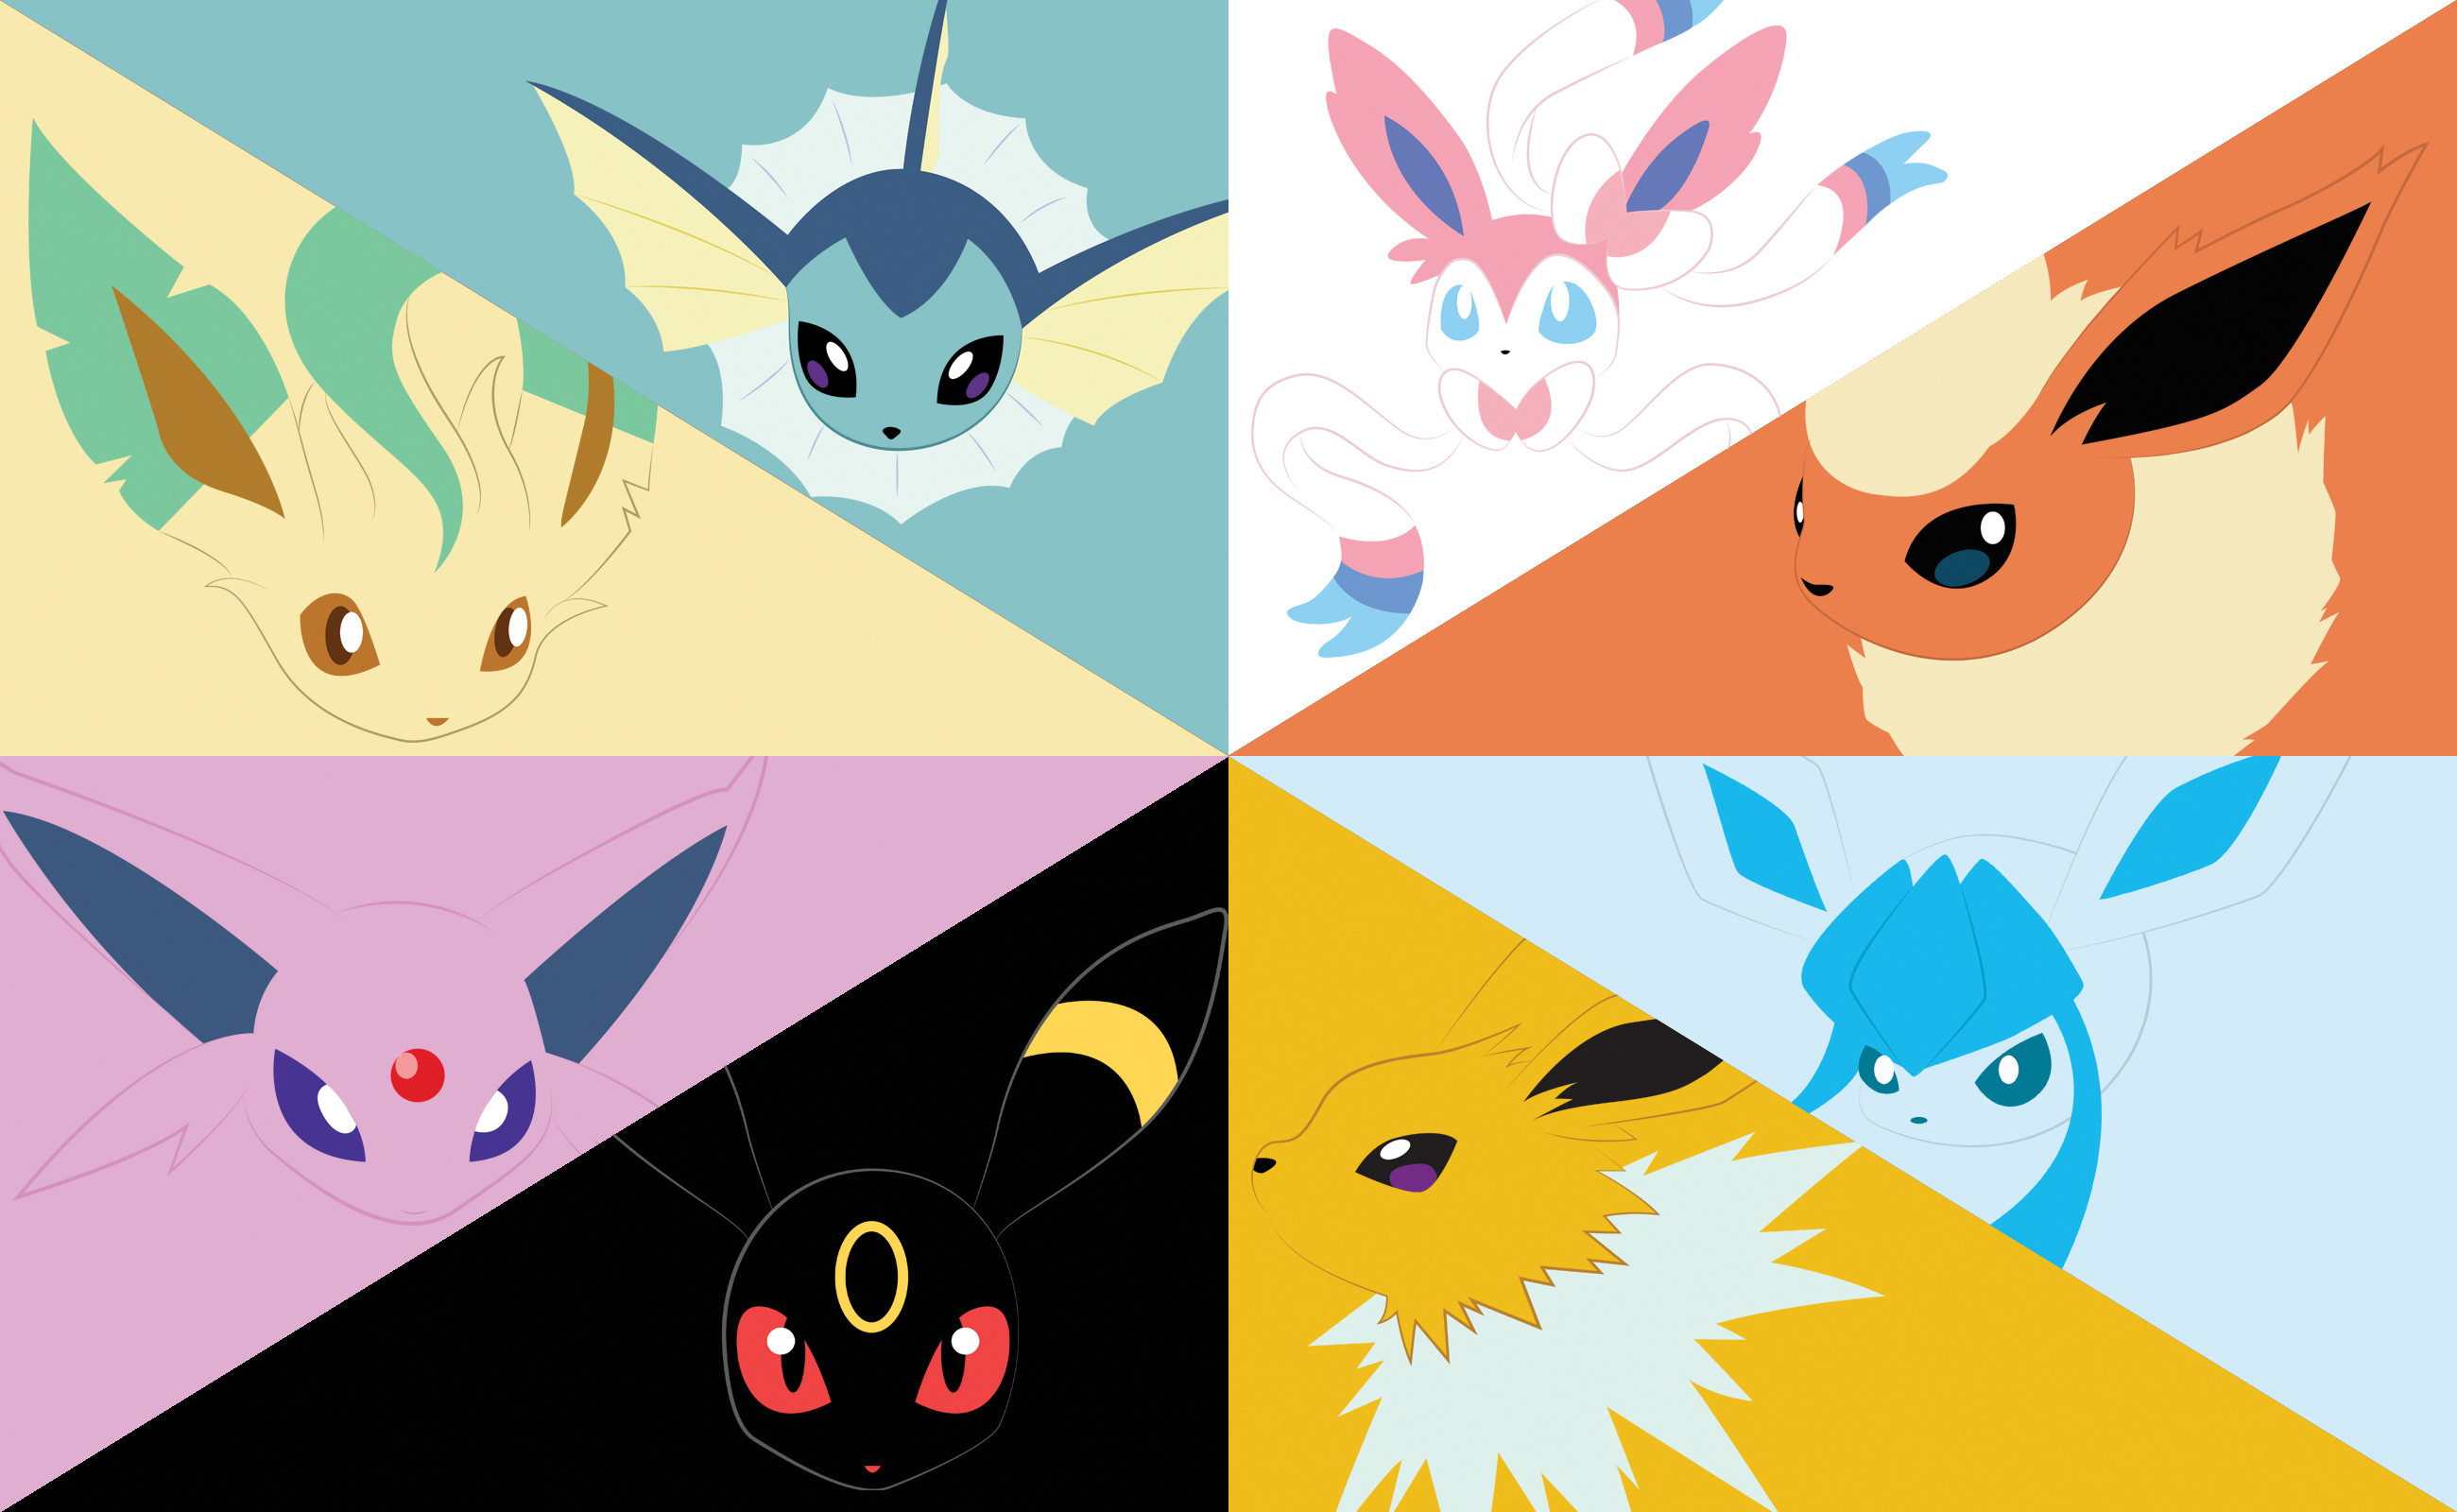 2600x1600 DeviantArt: More Like Eevee Evolutions by Jhonaatan